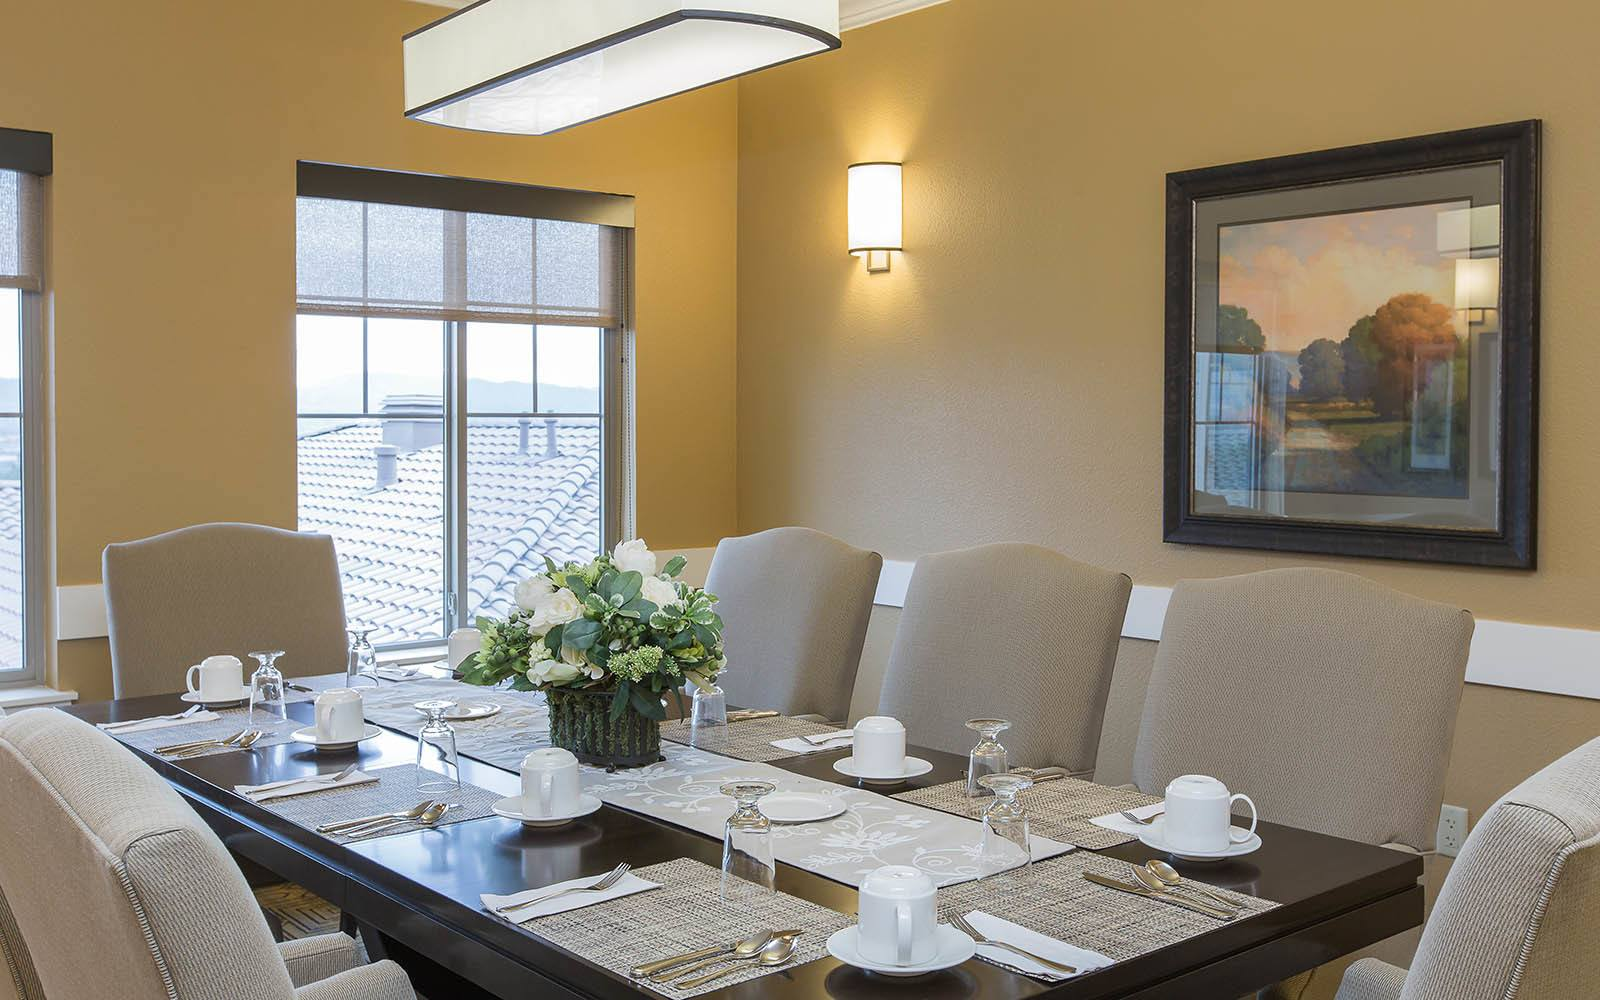 Dining Table With Place Settings at Brightwater Senior Living of Highland in Highland, CA